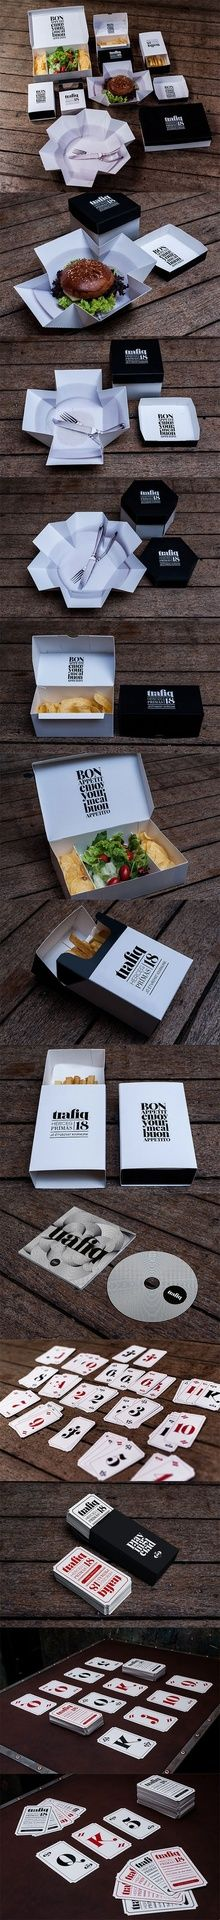 Cool packaging for a restaurant that's earth-friendly too.